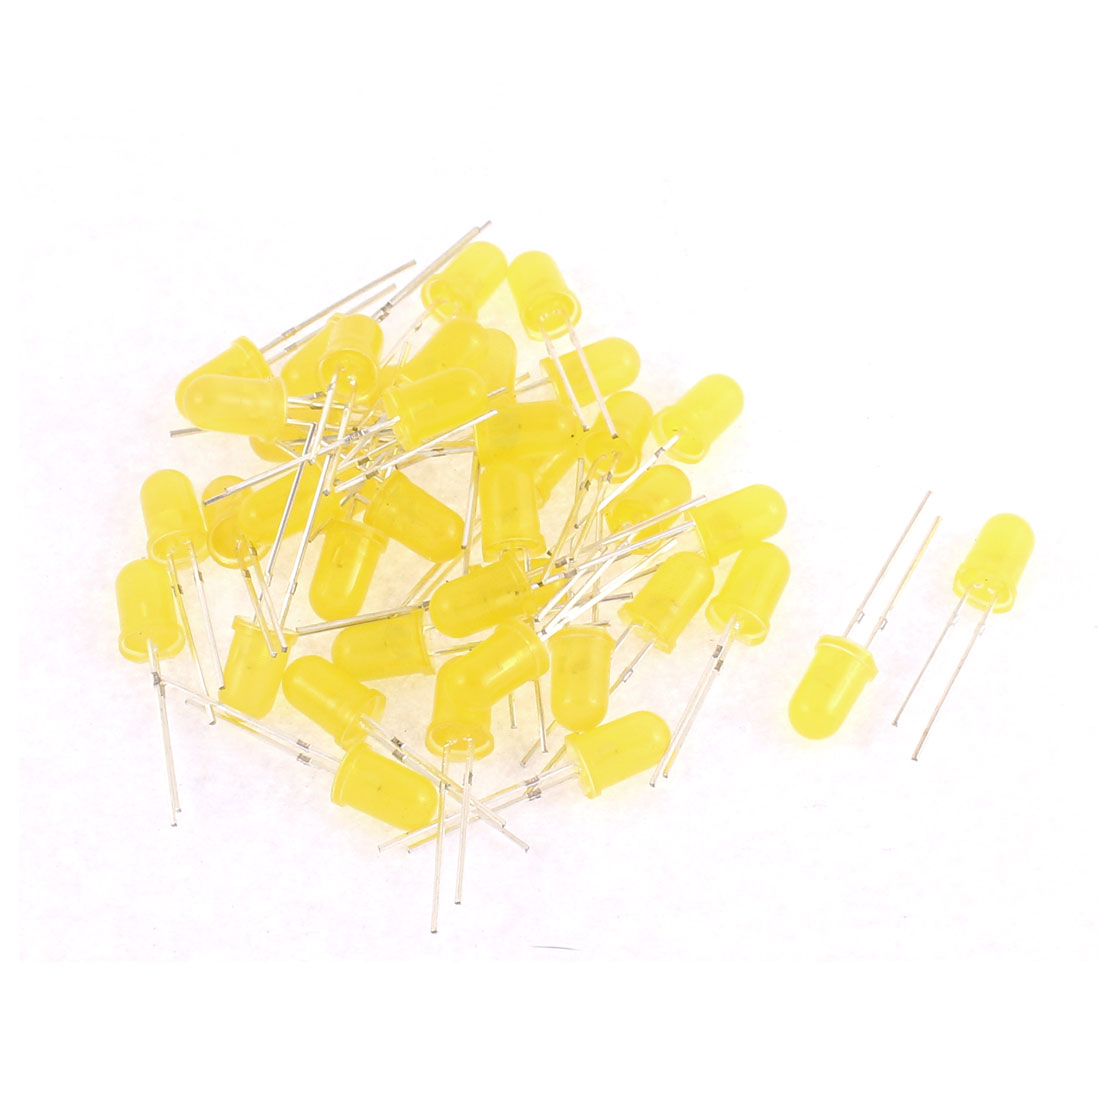 40pcs 5mm Yellow Color LED Light Emitting Diode Beads Lights Bulb Lamp